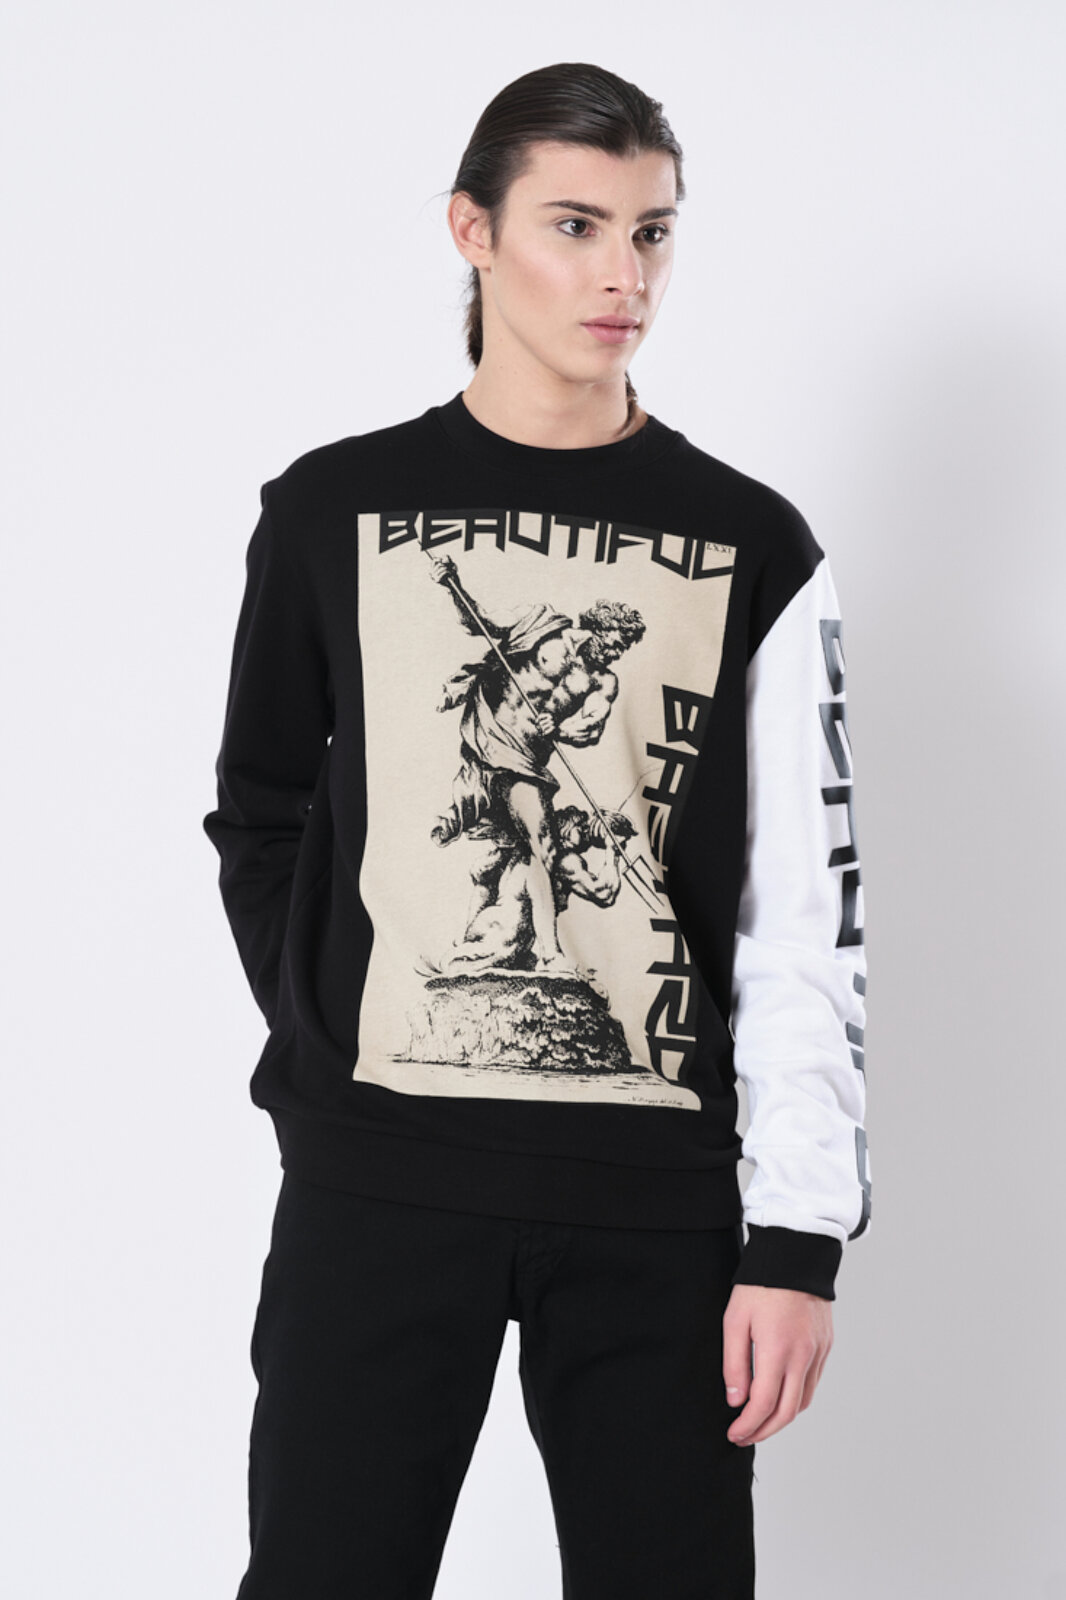 Triton Sweatshirt - Beautiful Bastard